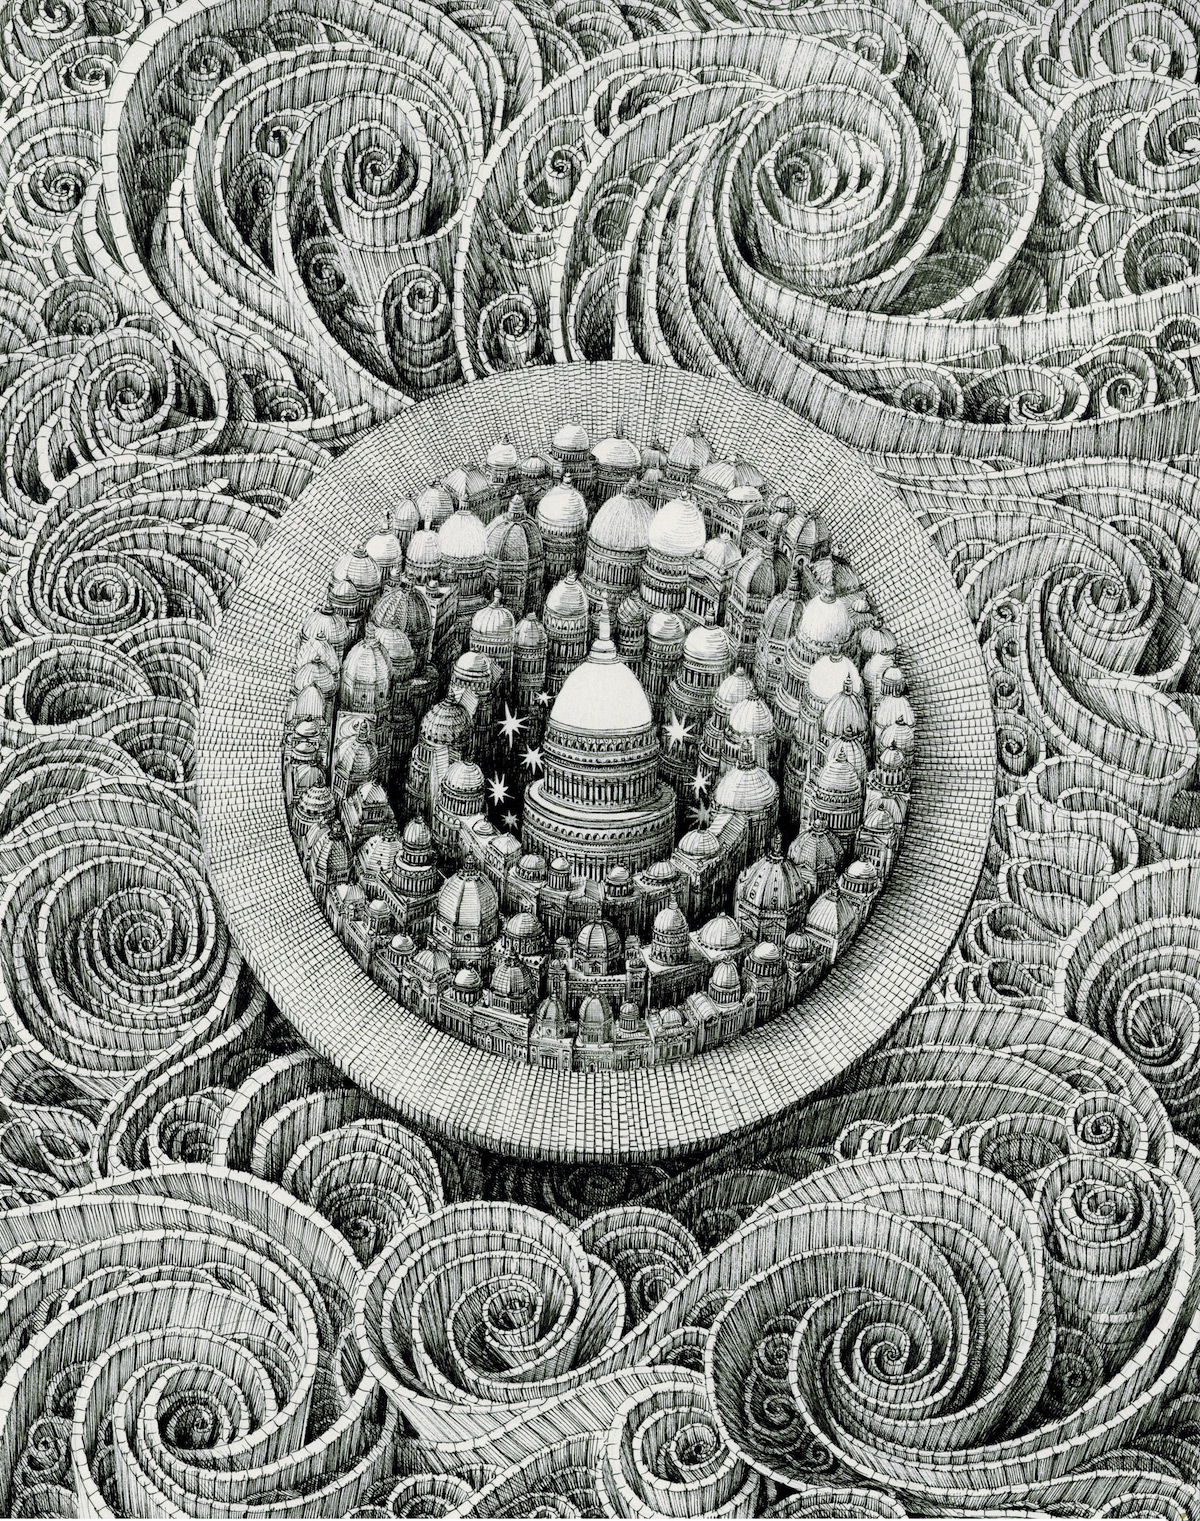 Ad Infinitum: Pen & Ink Drawings by Benjamin Sack Depict Infinite Cityscapes